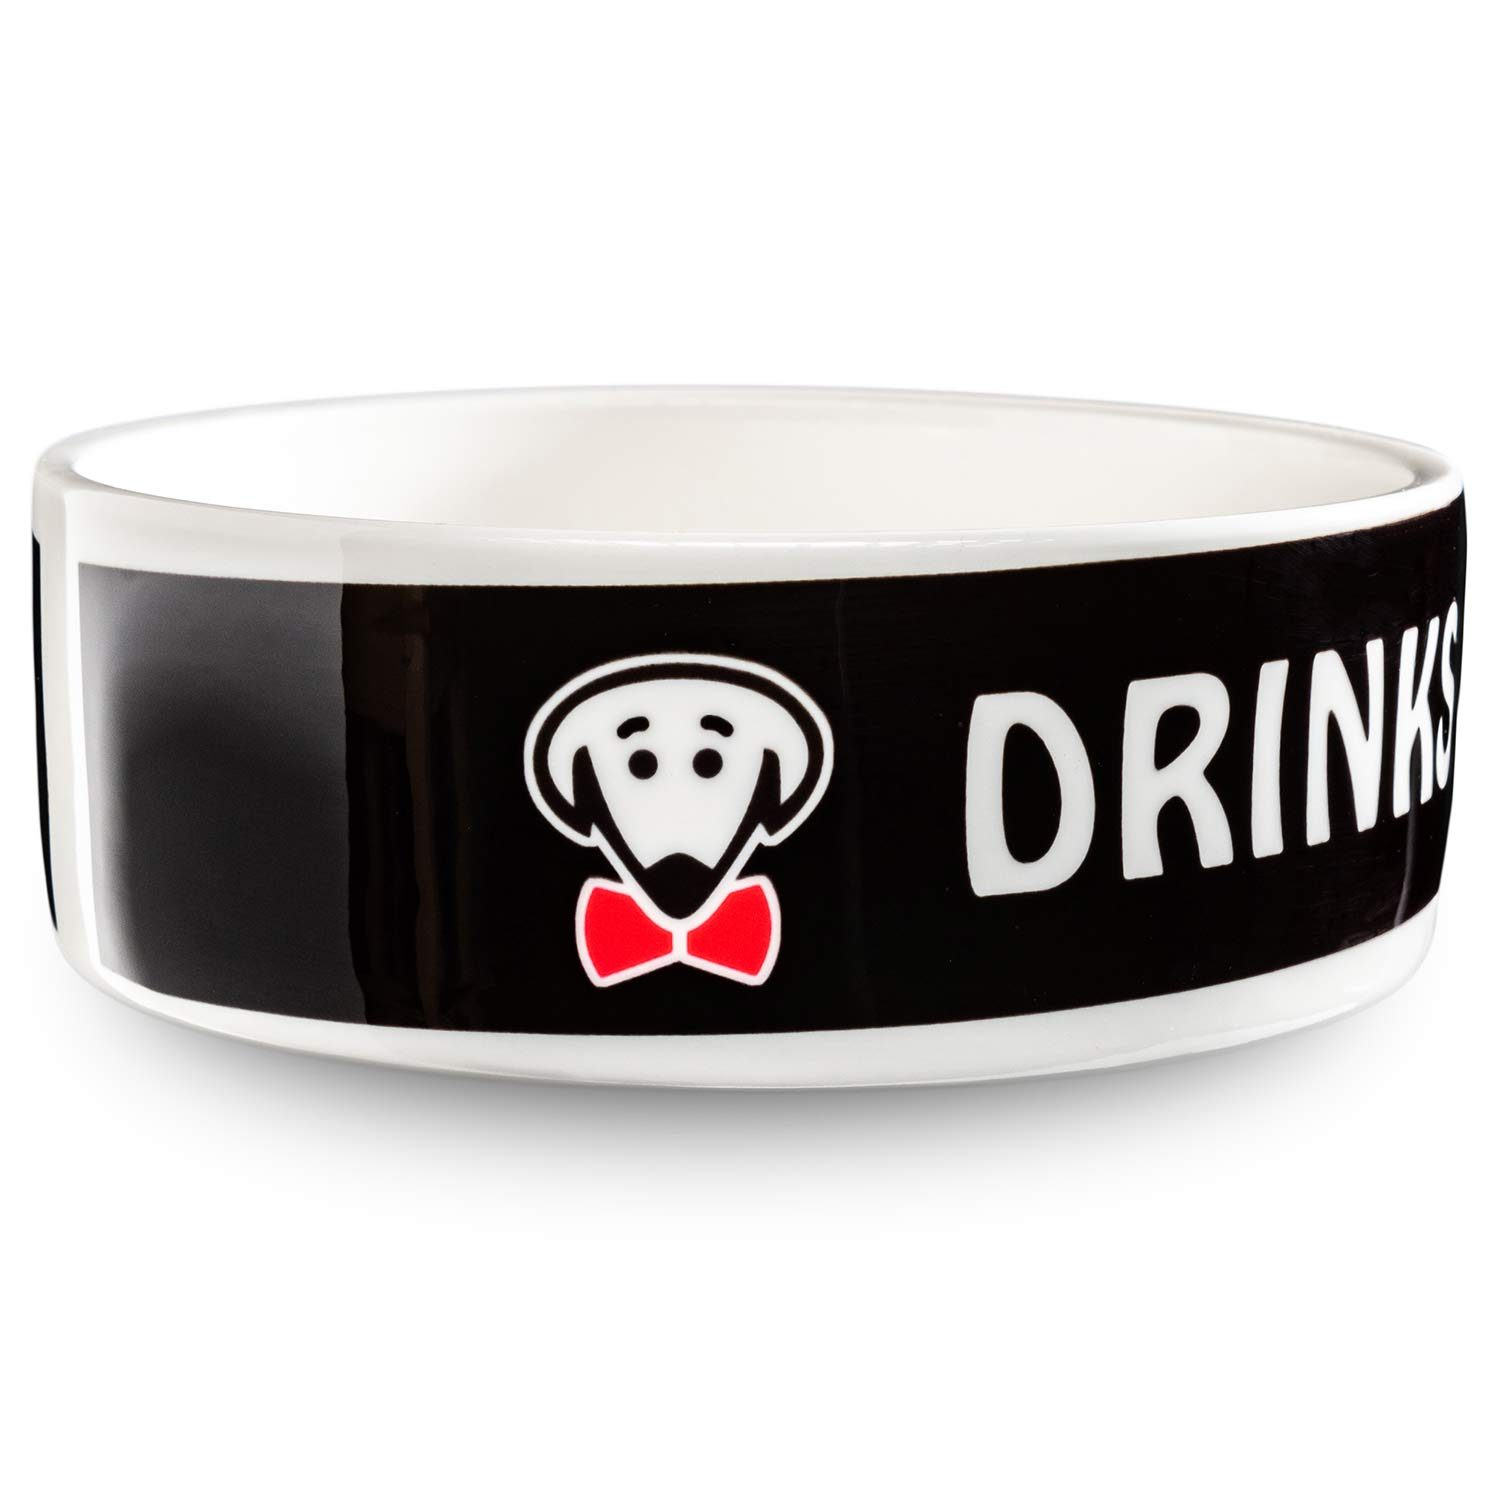 Drinks for the Boss pet bowl in black by Beau Tyler